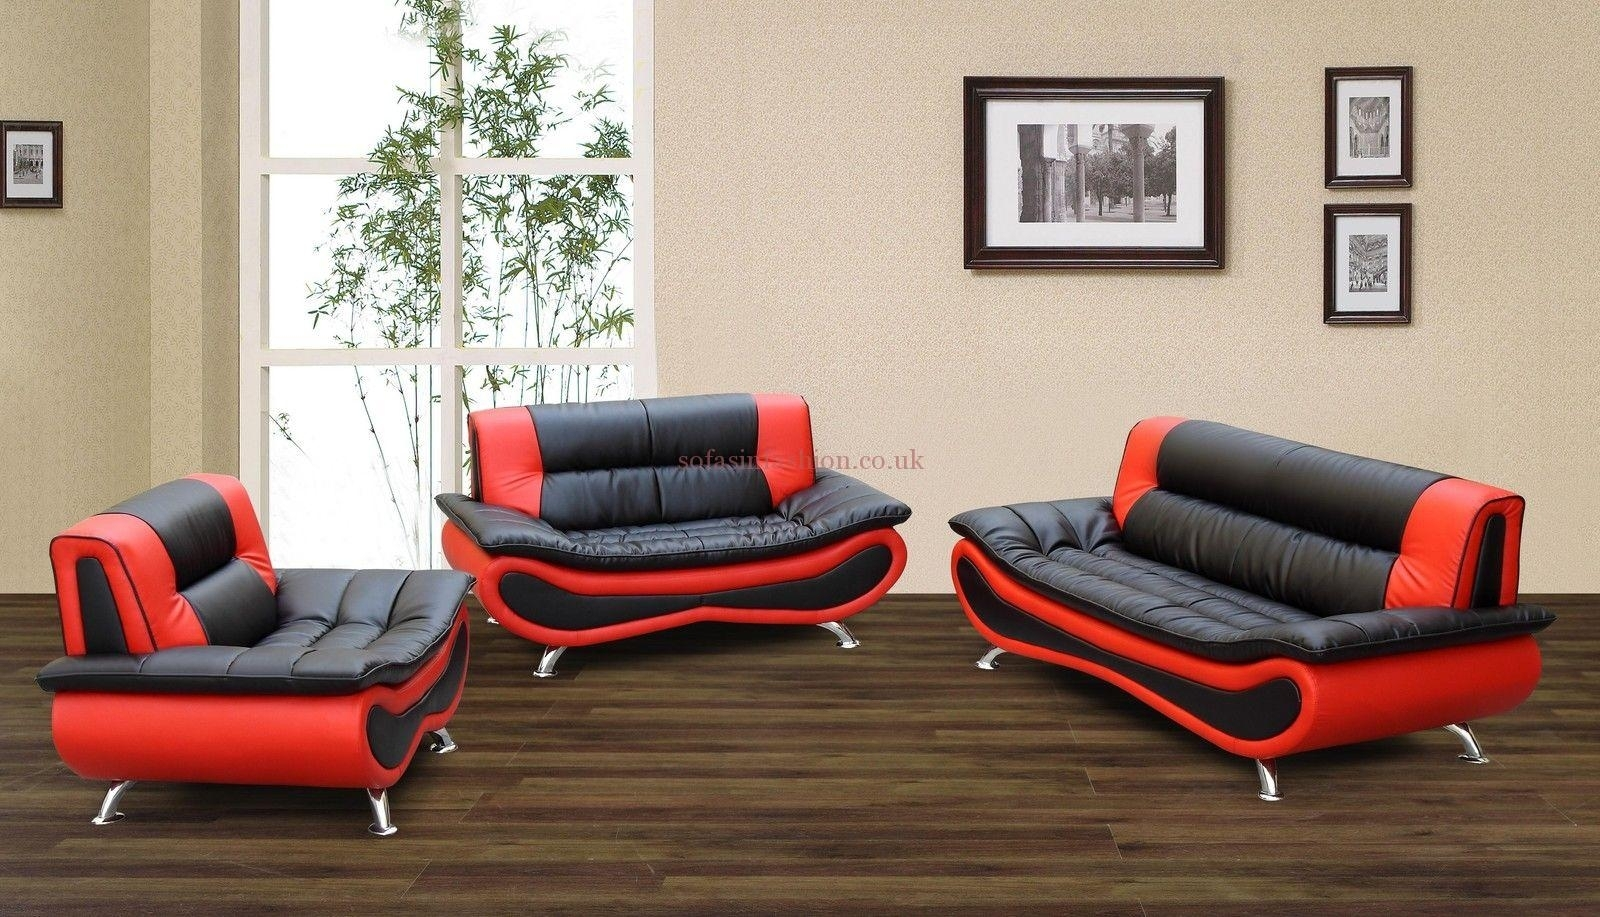 Leather Sofa Sale Black Red Napoli Faux Sofas – Dma Homes | #7369 With Regard To Red And Black Sofas (Image 8 of 10)